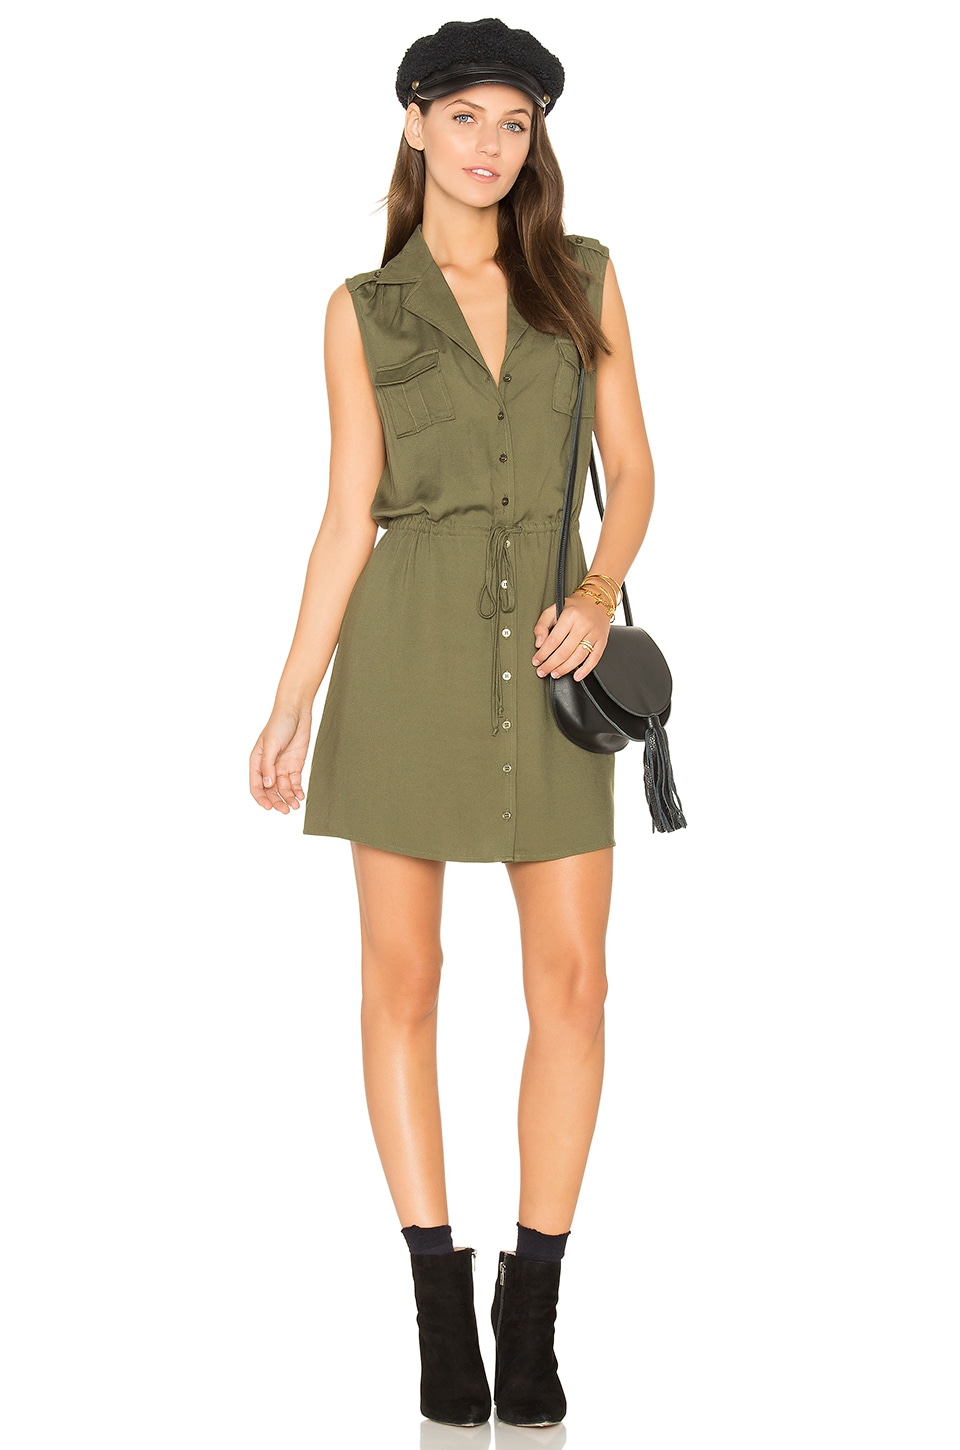 BB Dakota Jack by BB Dakota Santos Dress in Fern Green